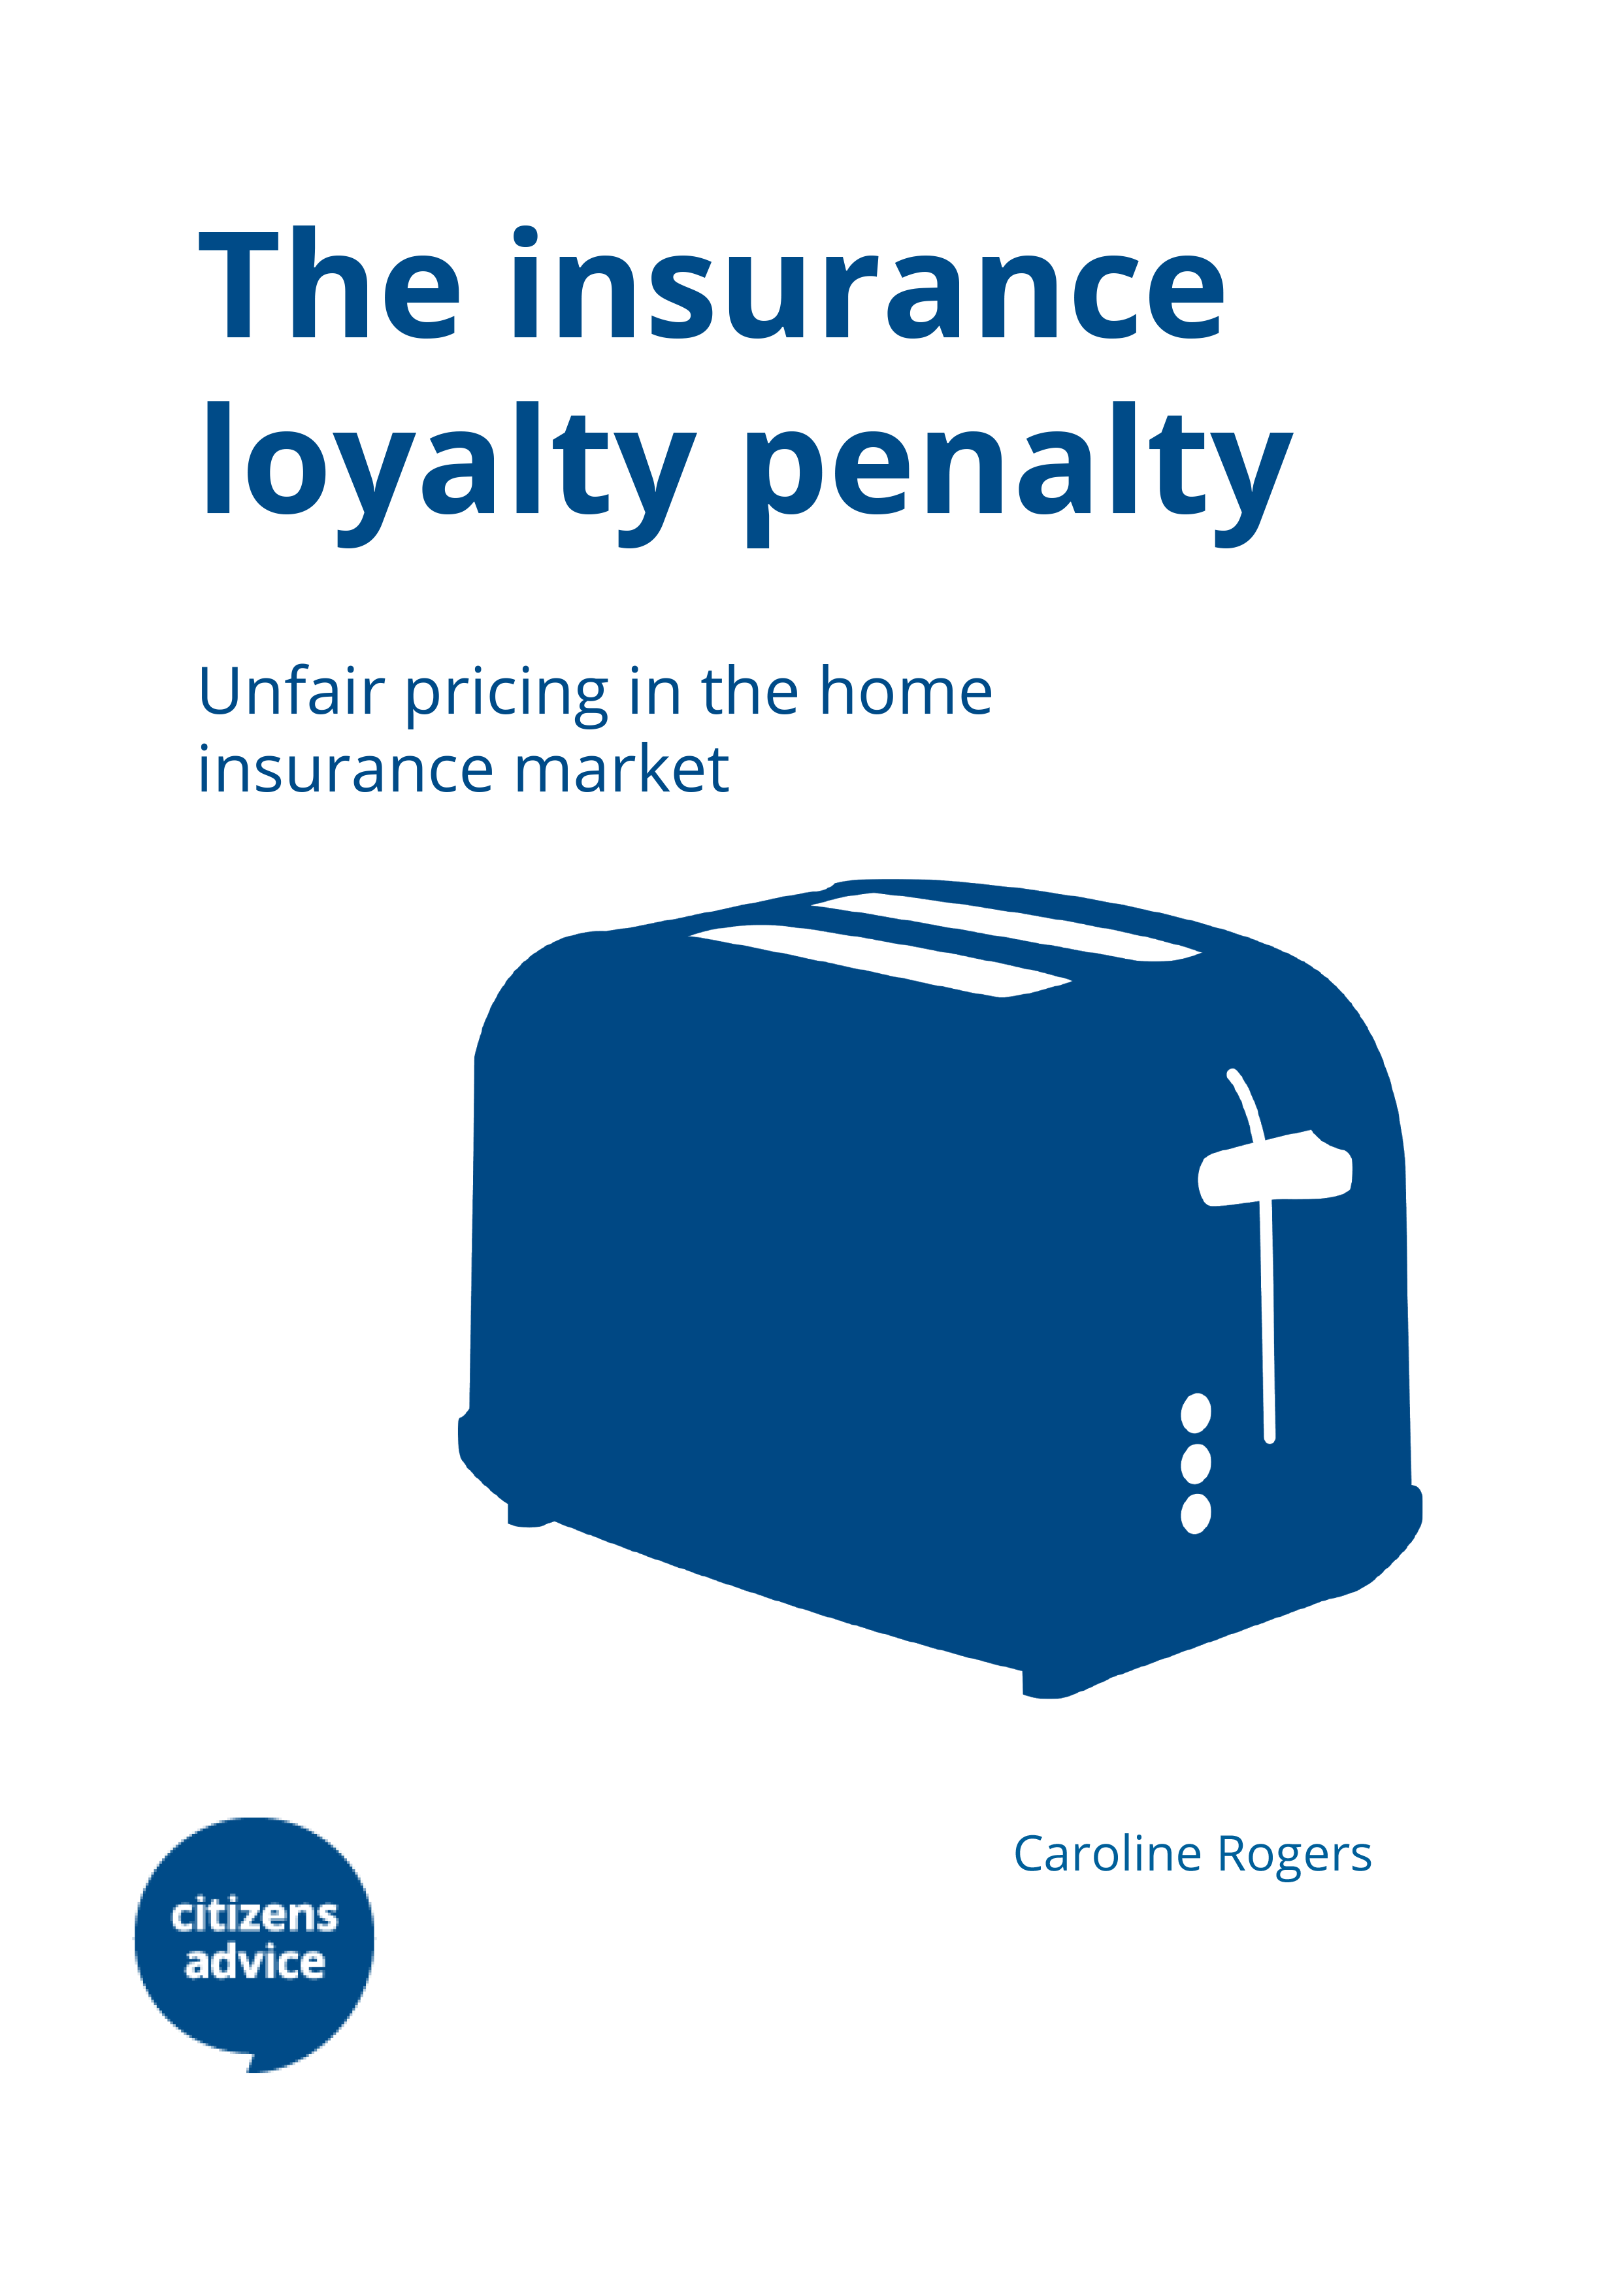 The insurance loyalty penalty: unfair pricing in the home insurance market